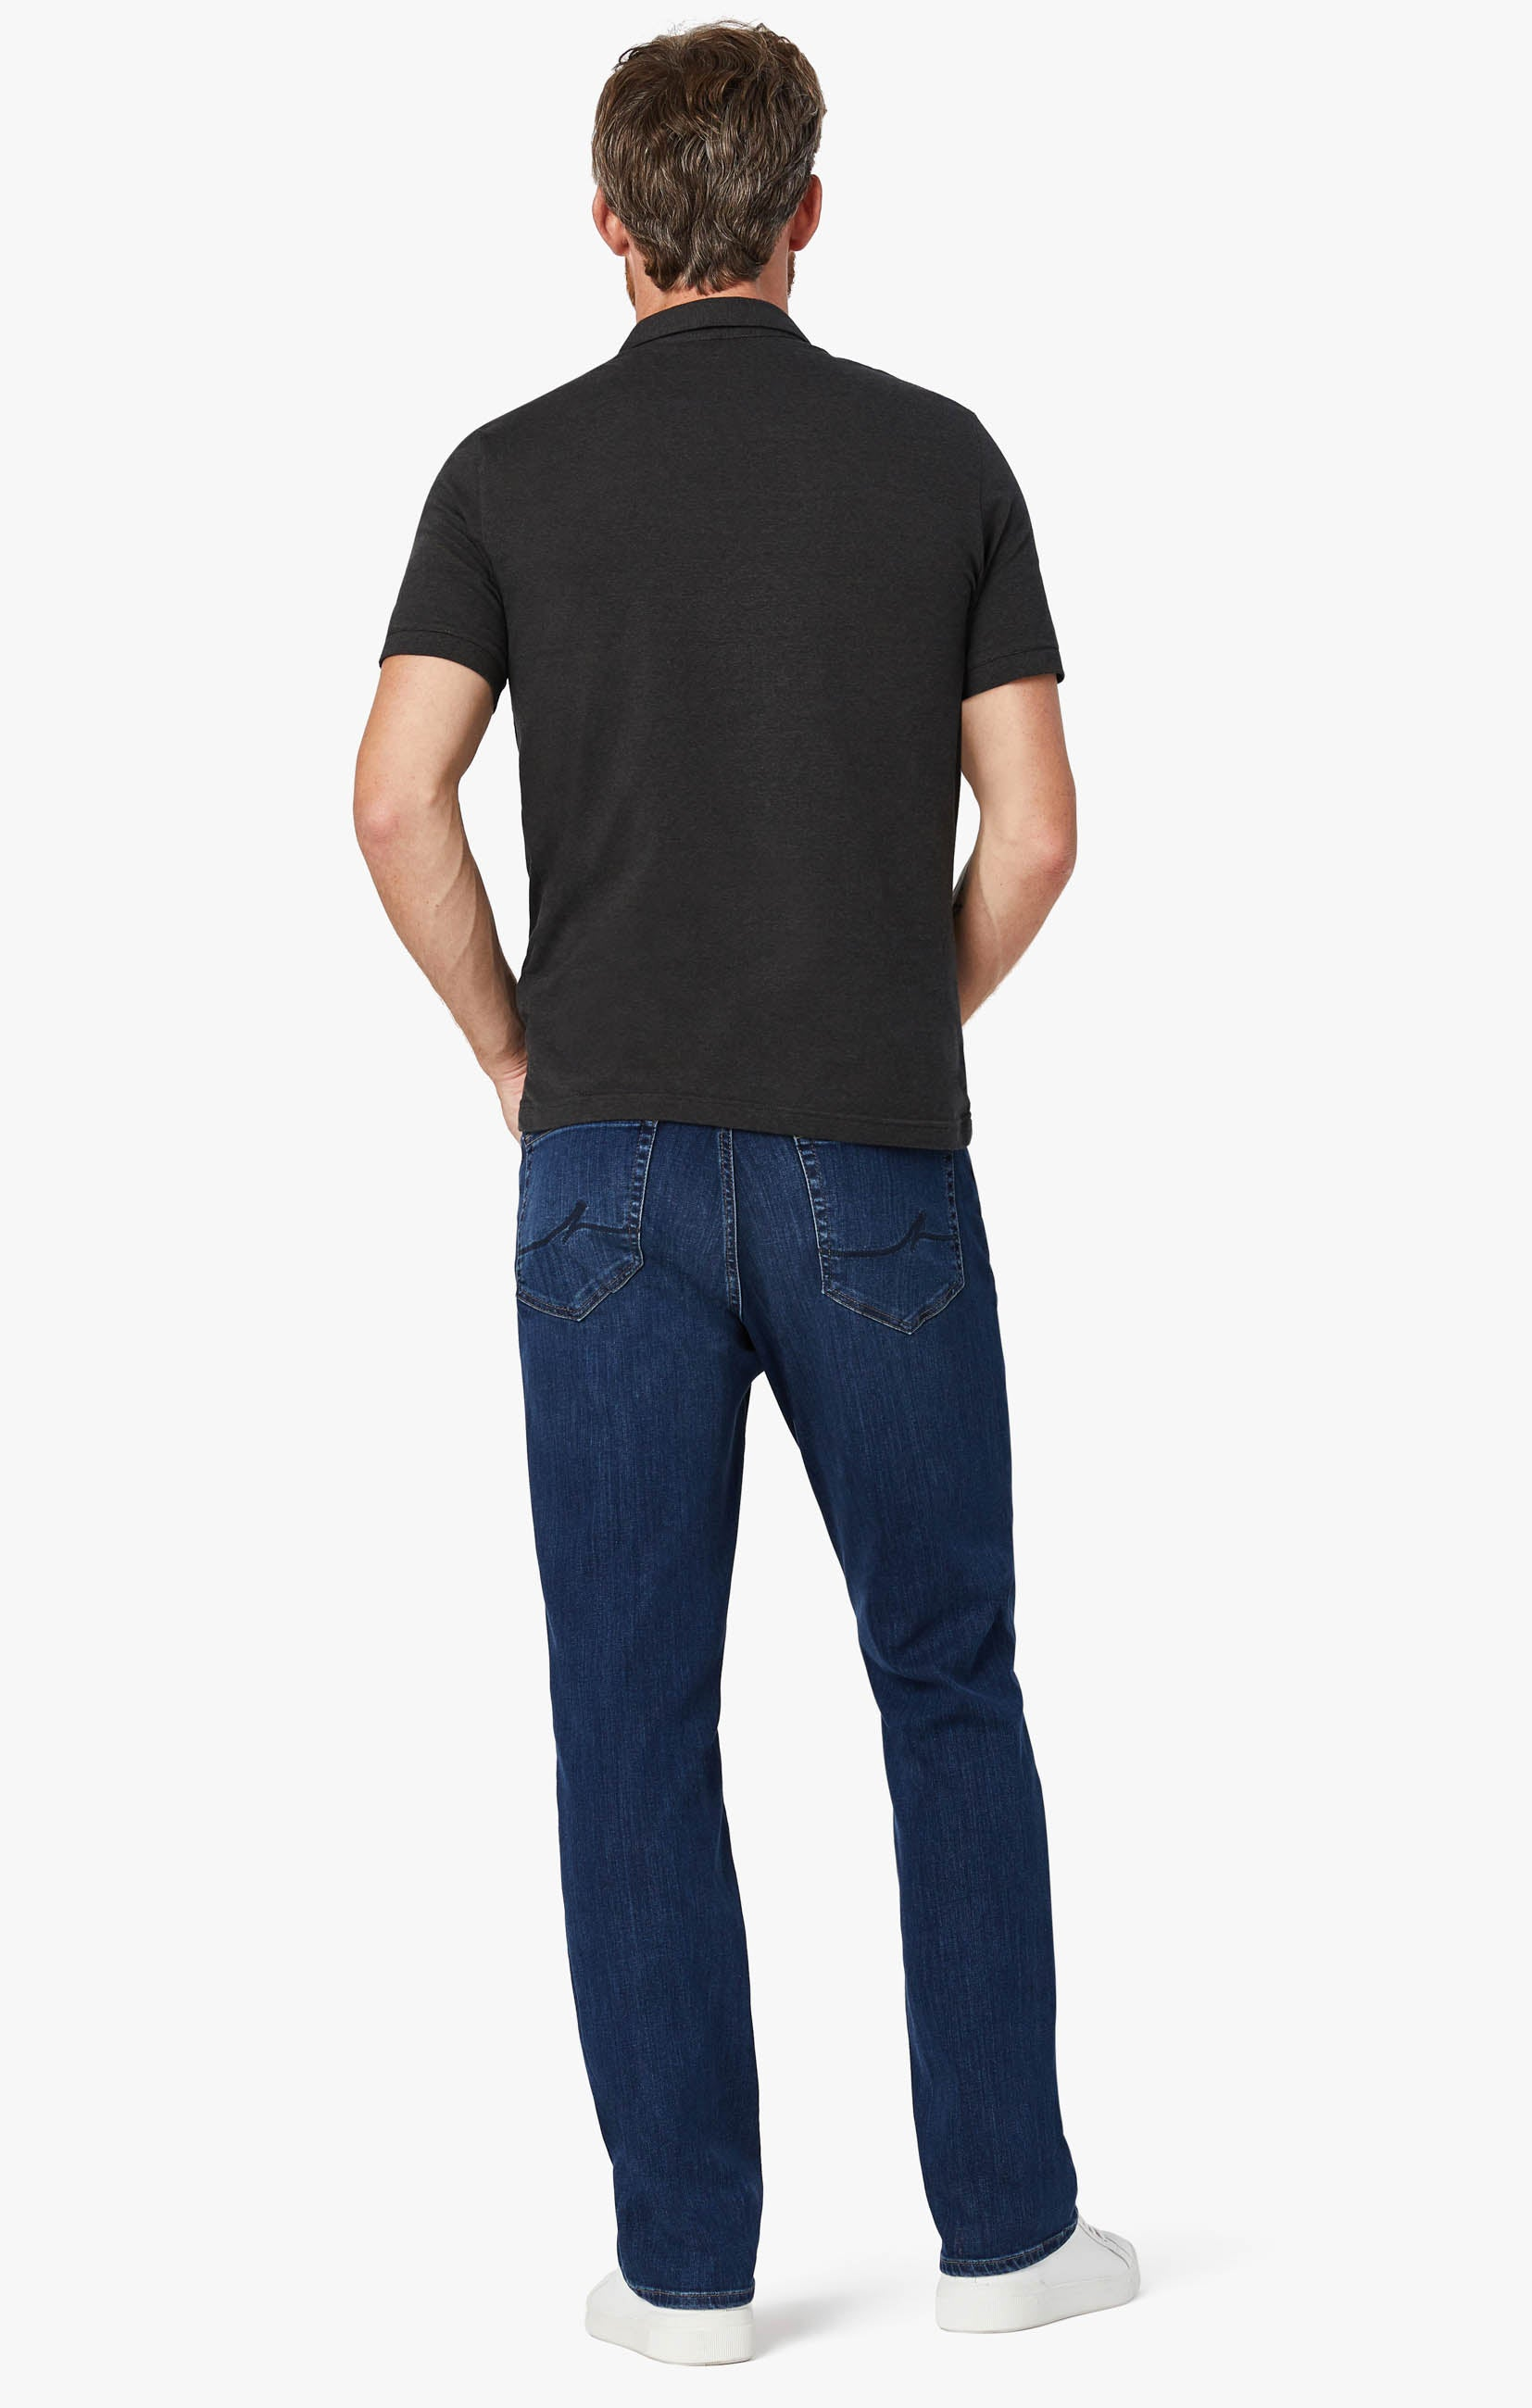 Charisma Relaxed Straight Leg Jeans In Mid Siena Image 3